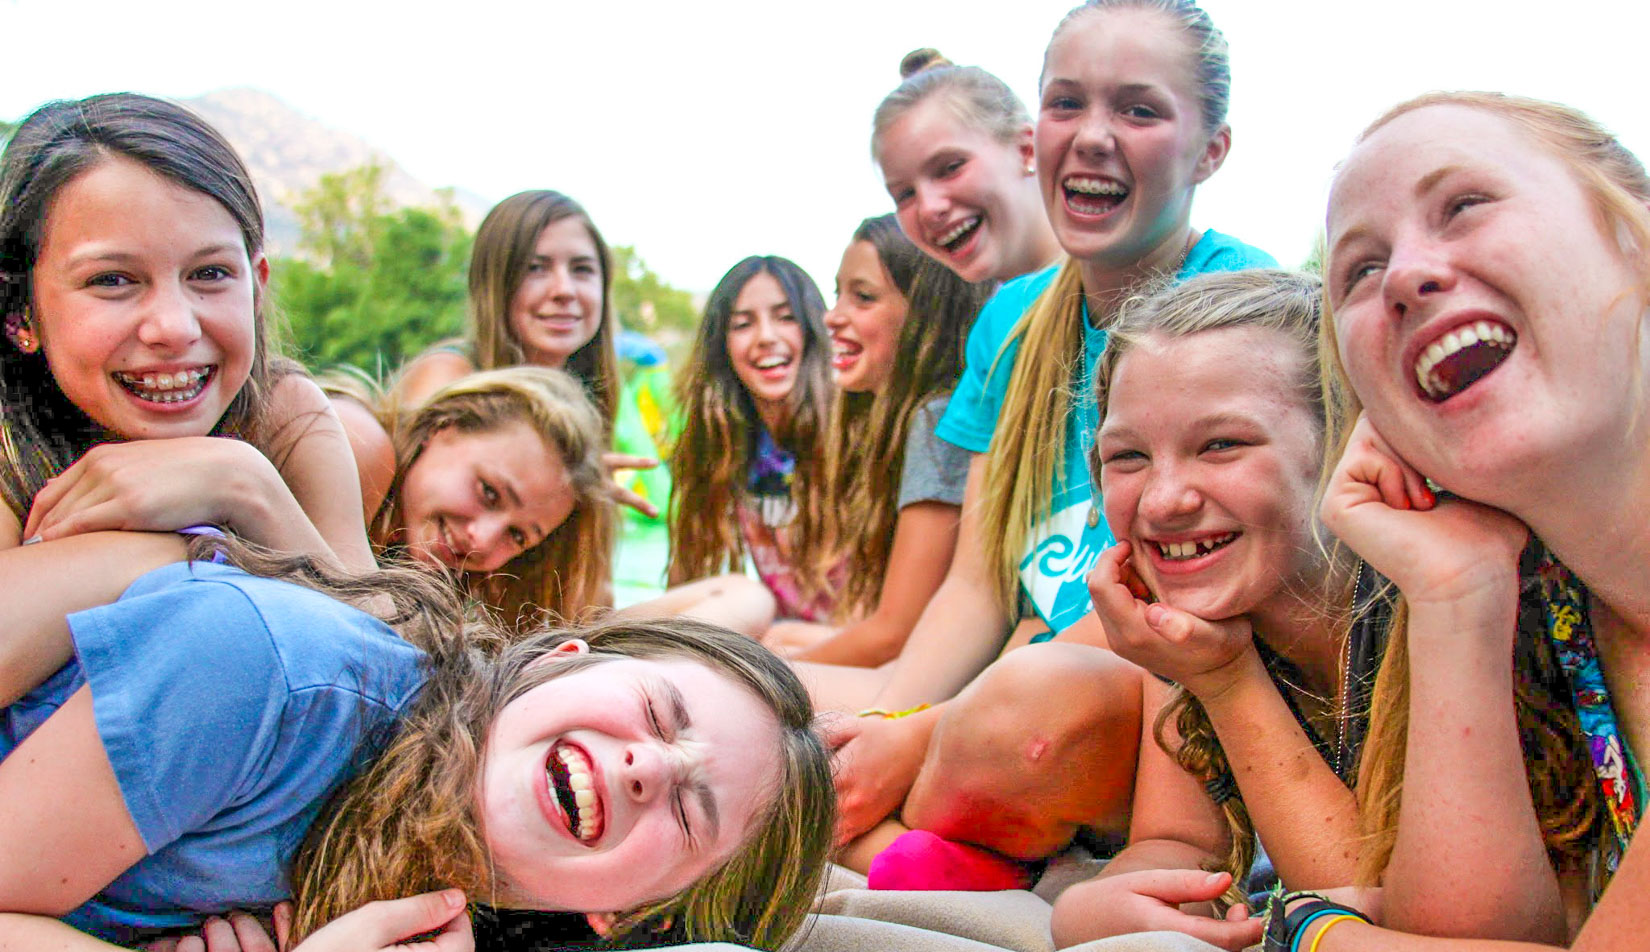 A group of campers laughing and smiling.